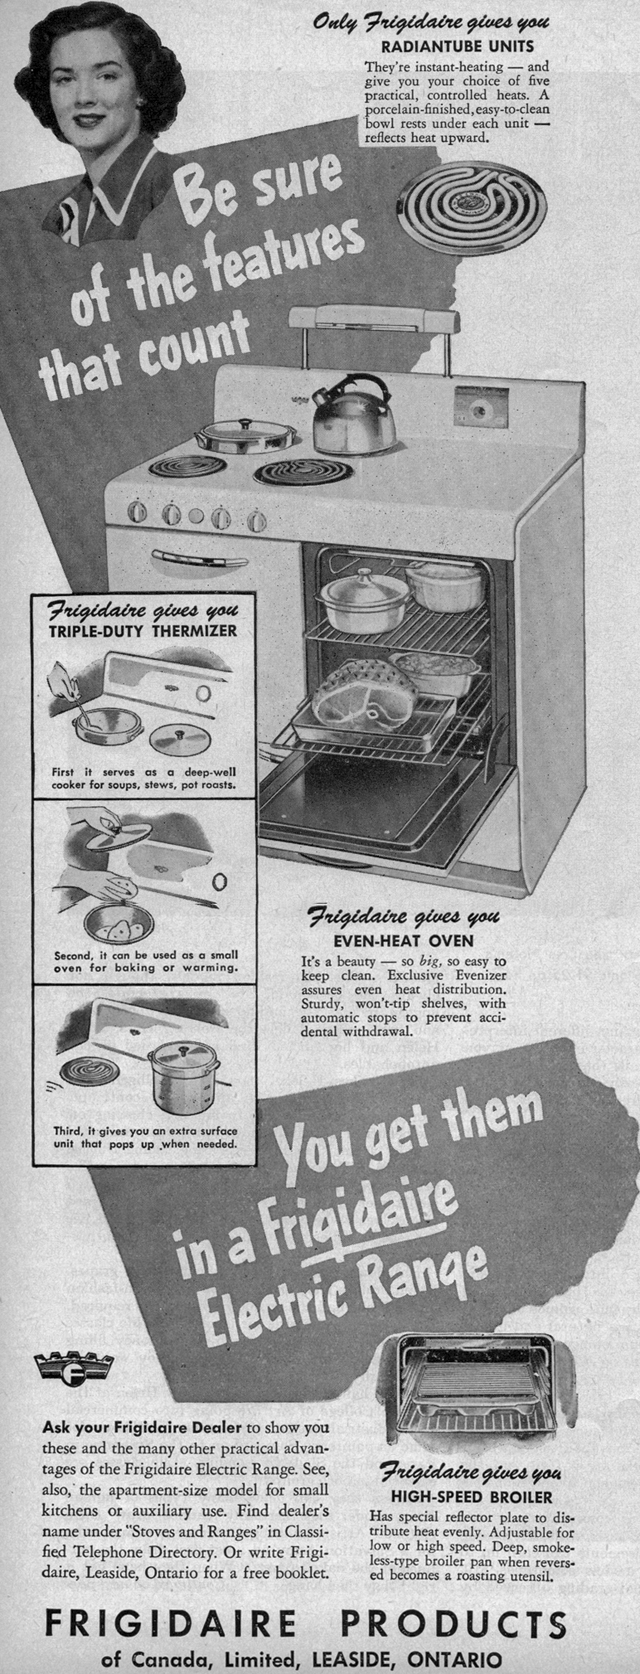 Vintage Ad #559: Be Sure of the Features on your Frigidaire Stove